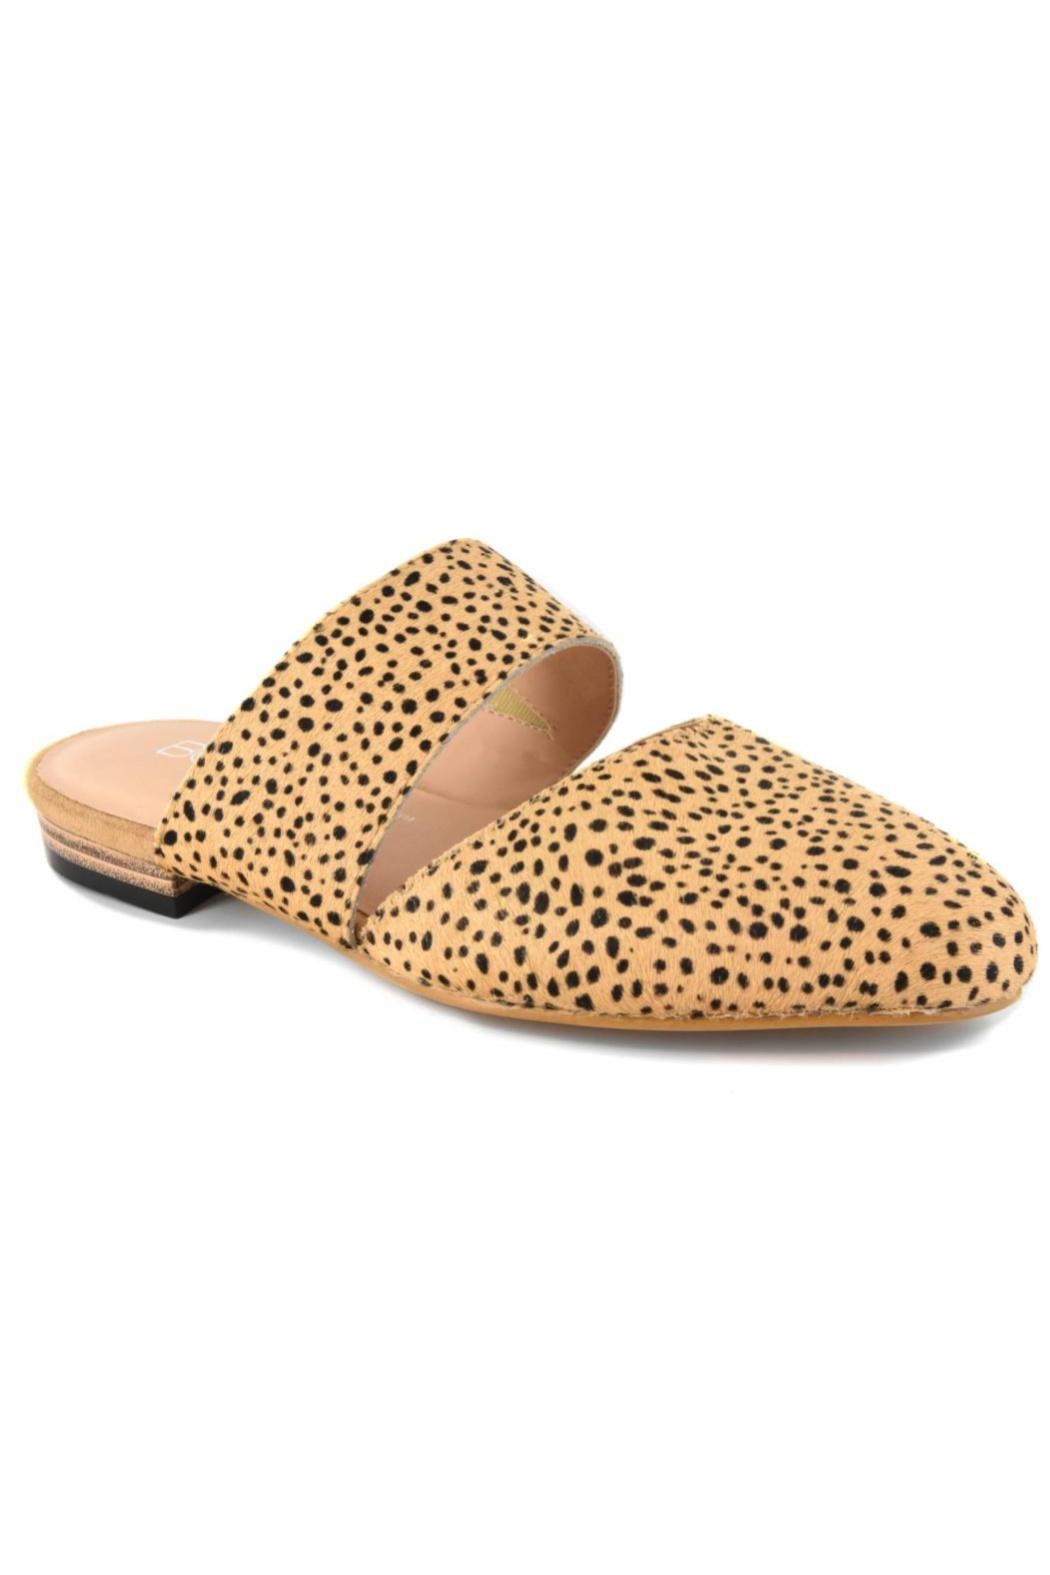 Corky's Shoes Carina Cheetah Slide - Front Cropped Image